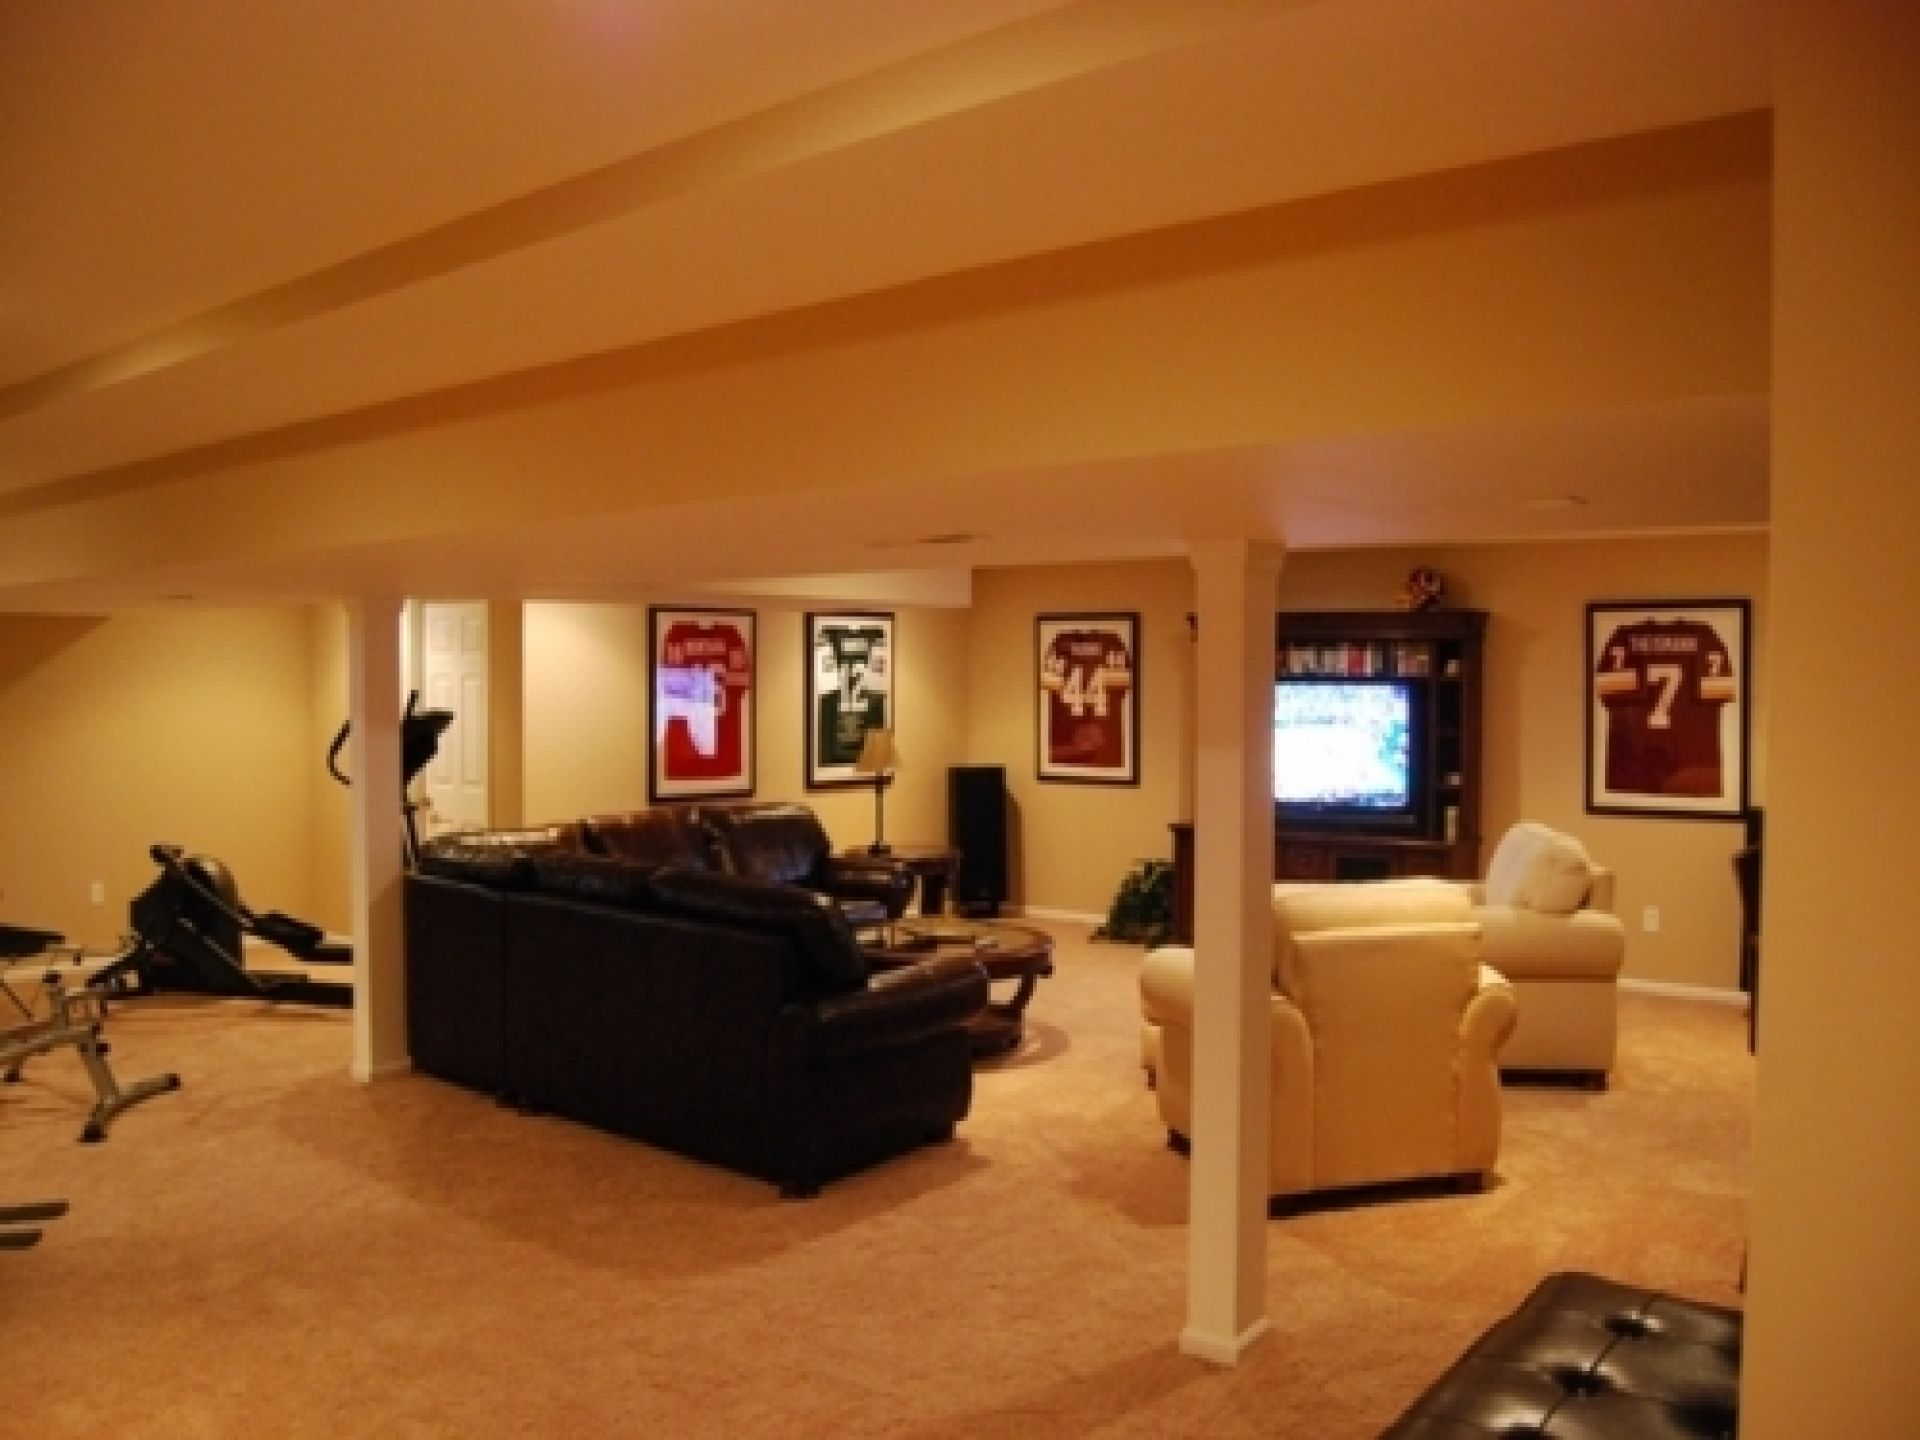 Basement Ideas On A Budget basement ideas on a budget | smalltowndjs | morgan home